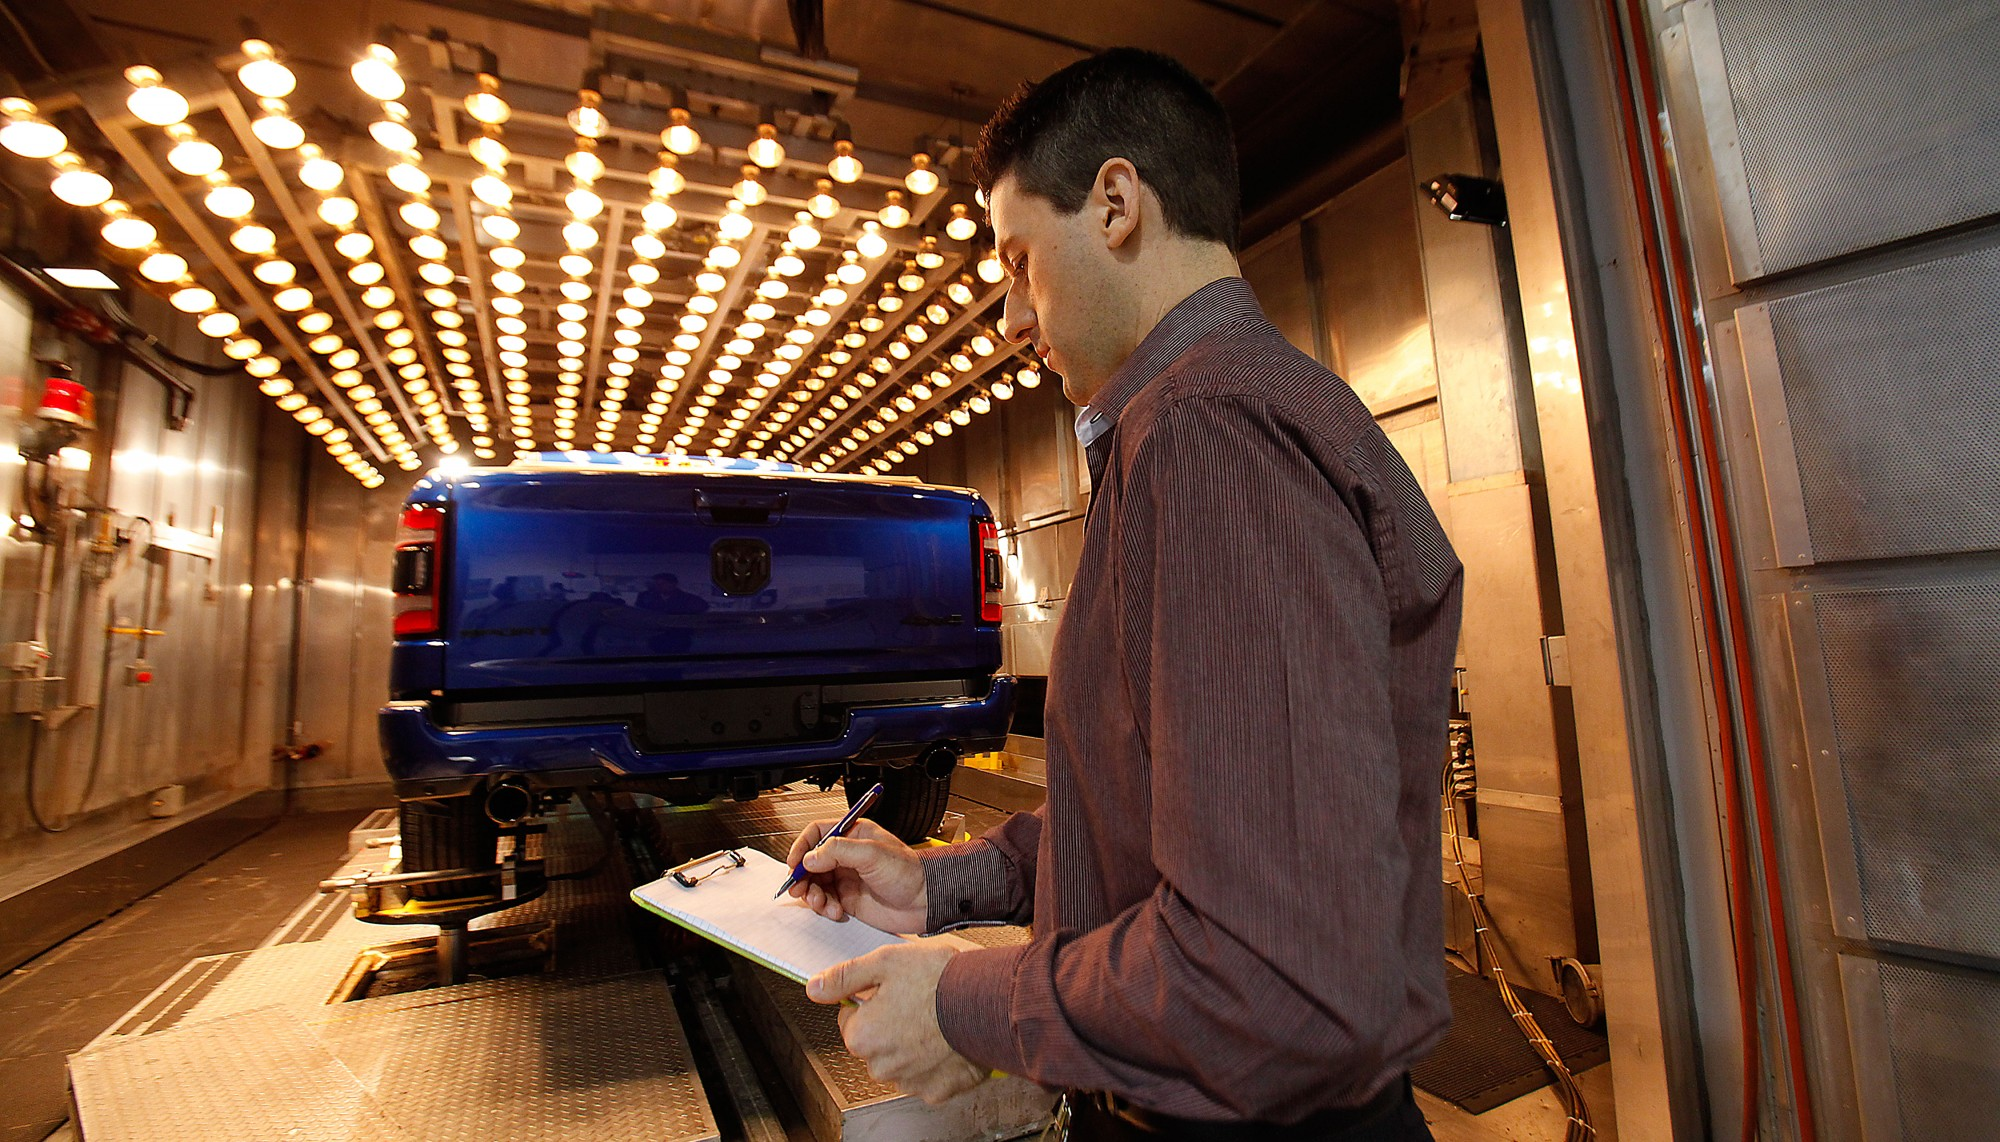 A student examines a vehicle under heat testing lamps.